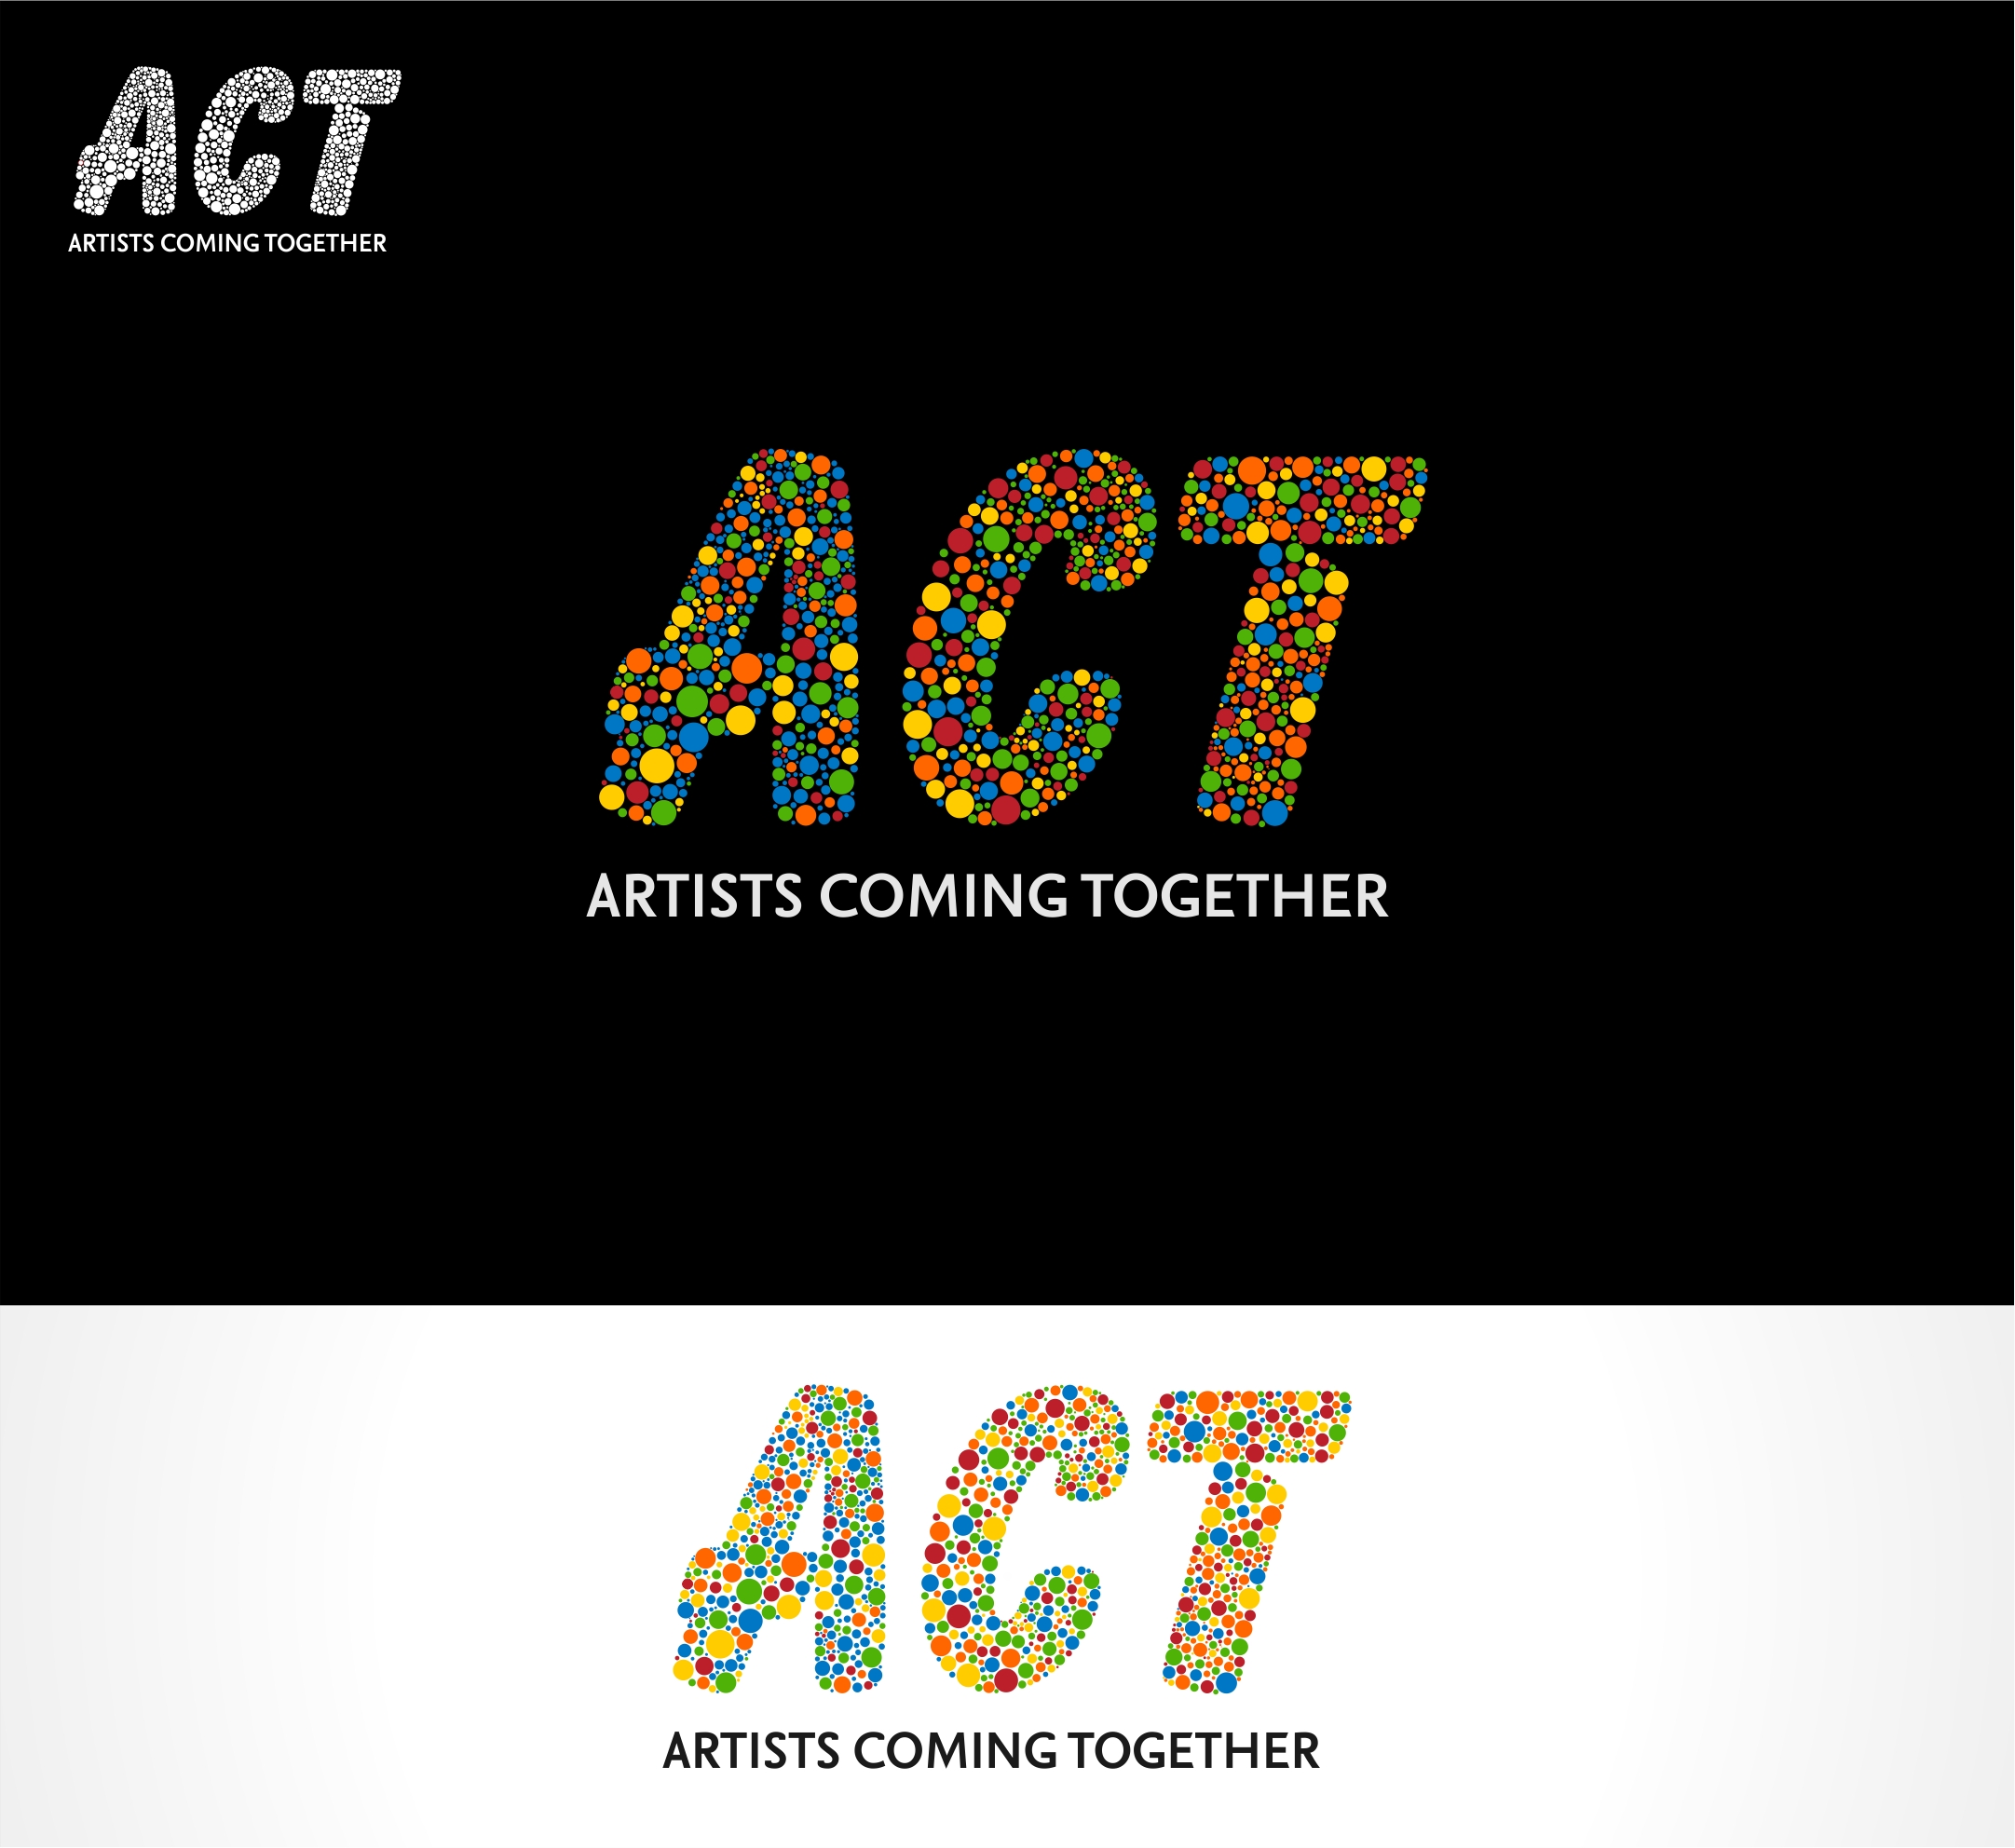 Logo Design by haidu - Entry No. 80 in the Logo Design Contest Creative Logo Design for A.C.T. Artists Coming Together.